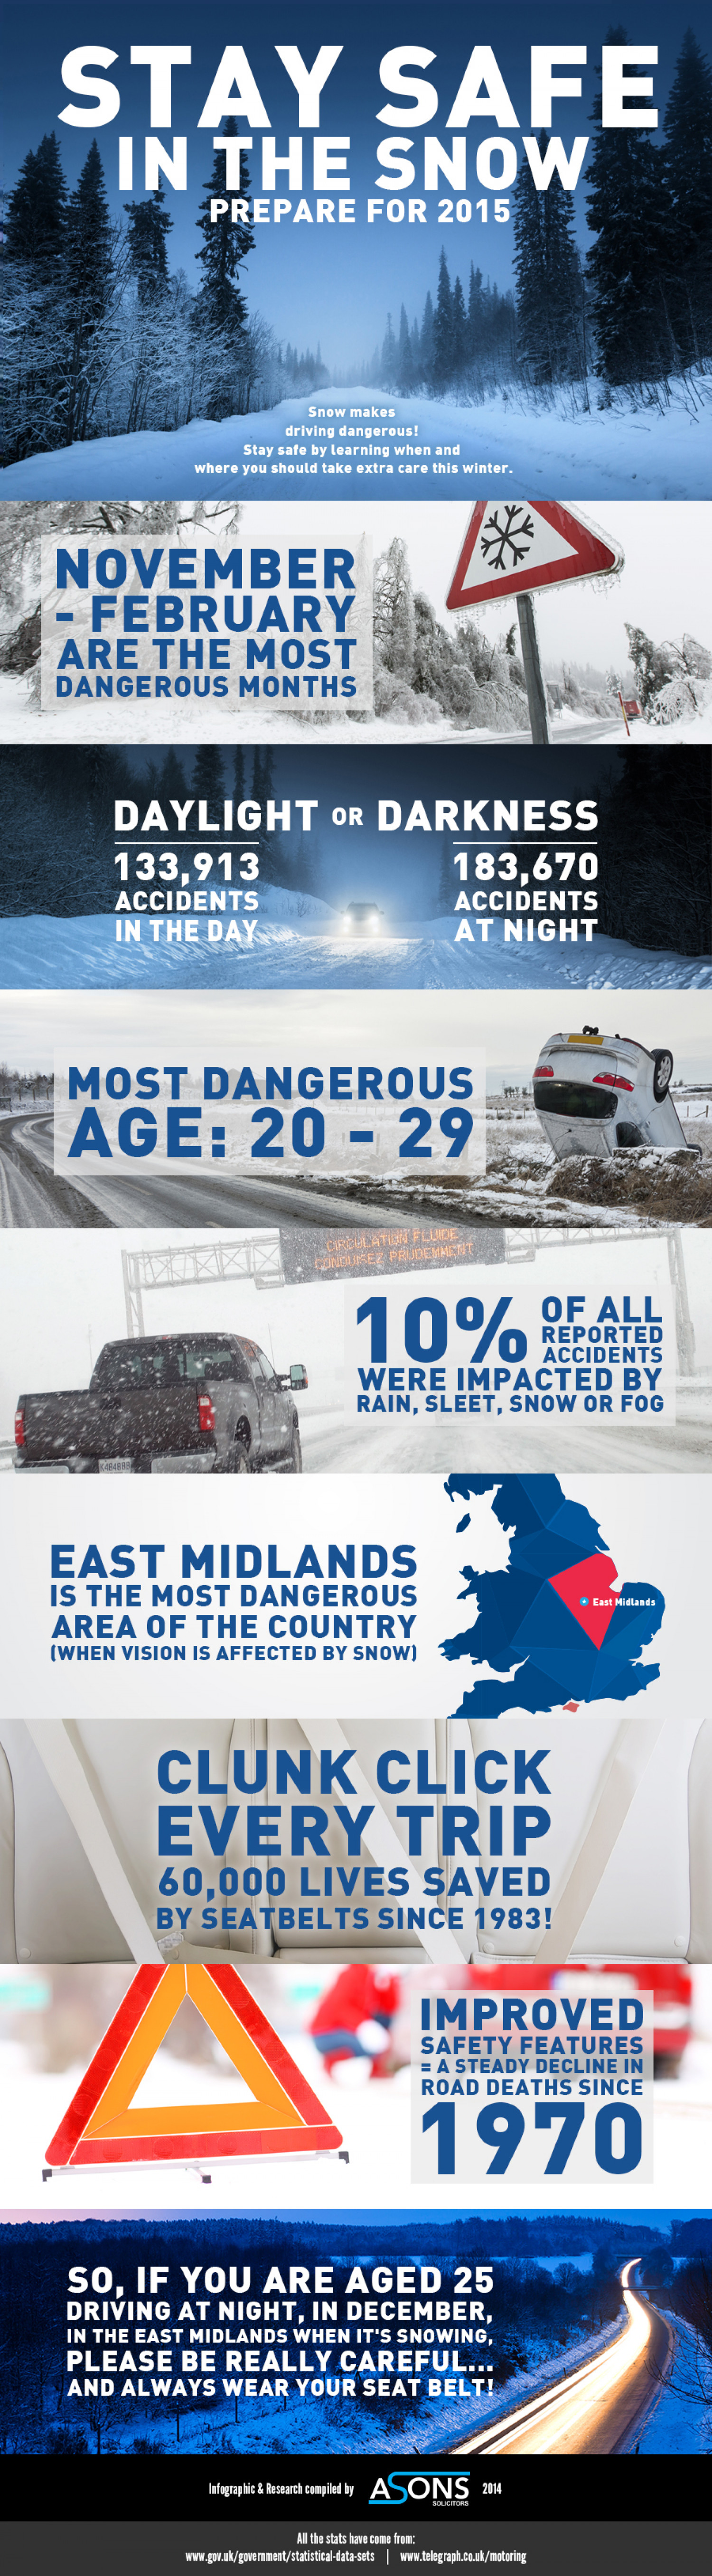 Stay safe in the snow Infographic